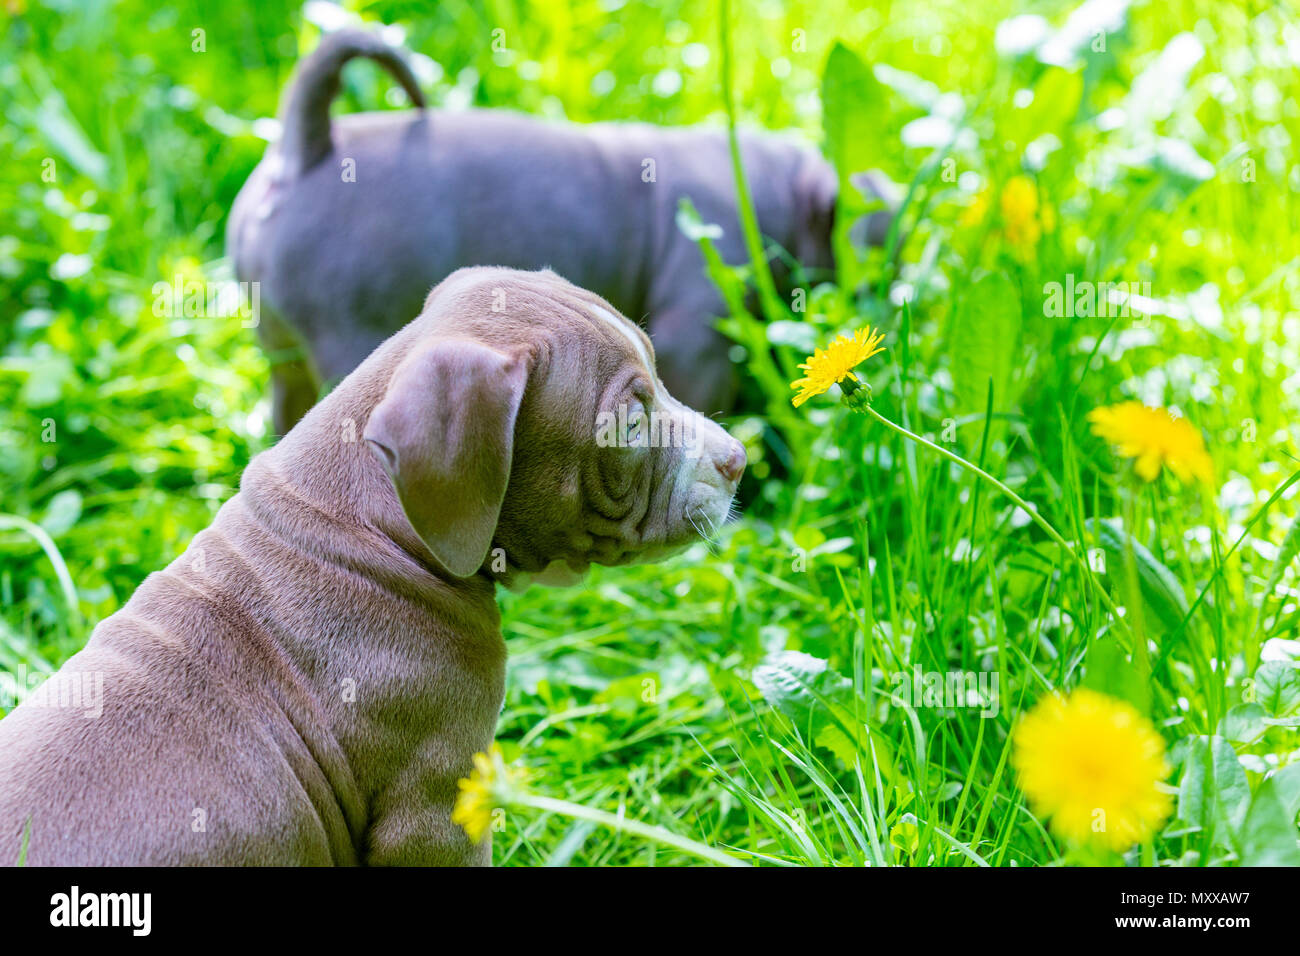 Cute little dogs sitting among yellow flowers in green grass in the cute little dogs sitting among yellow flowers in green grass in the park outdoors wallpaper mightylinksfo